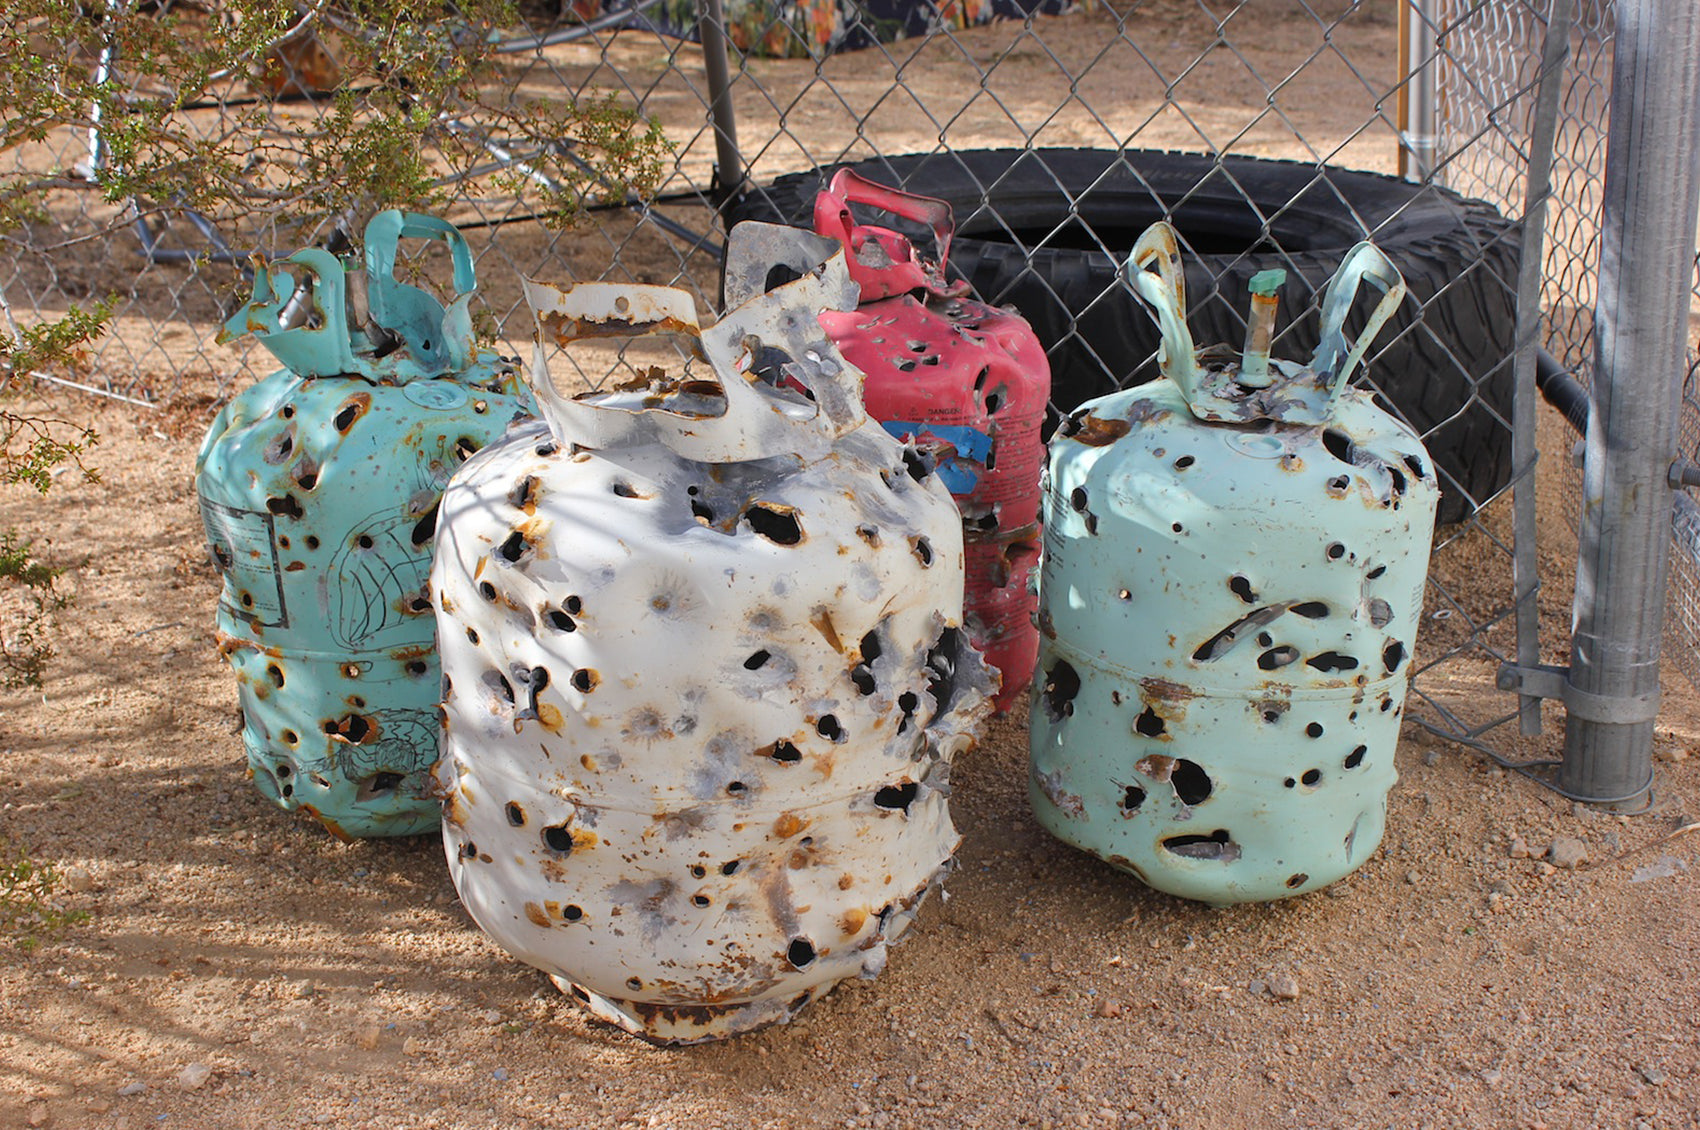 Empty gas canisters with bulletholes.